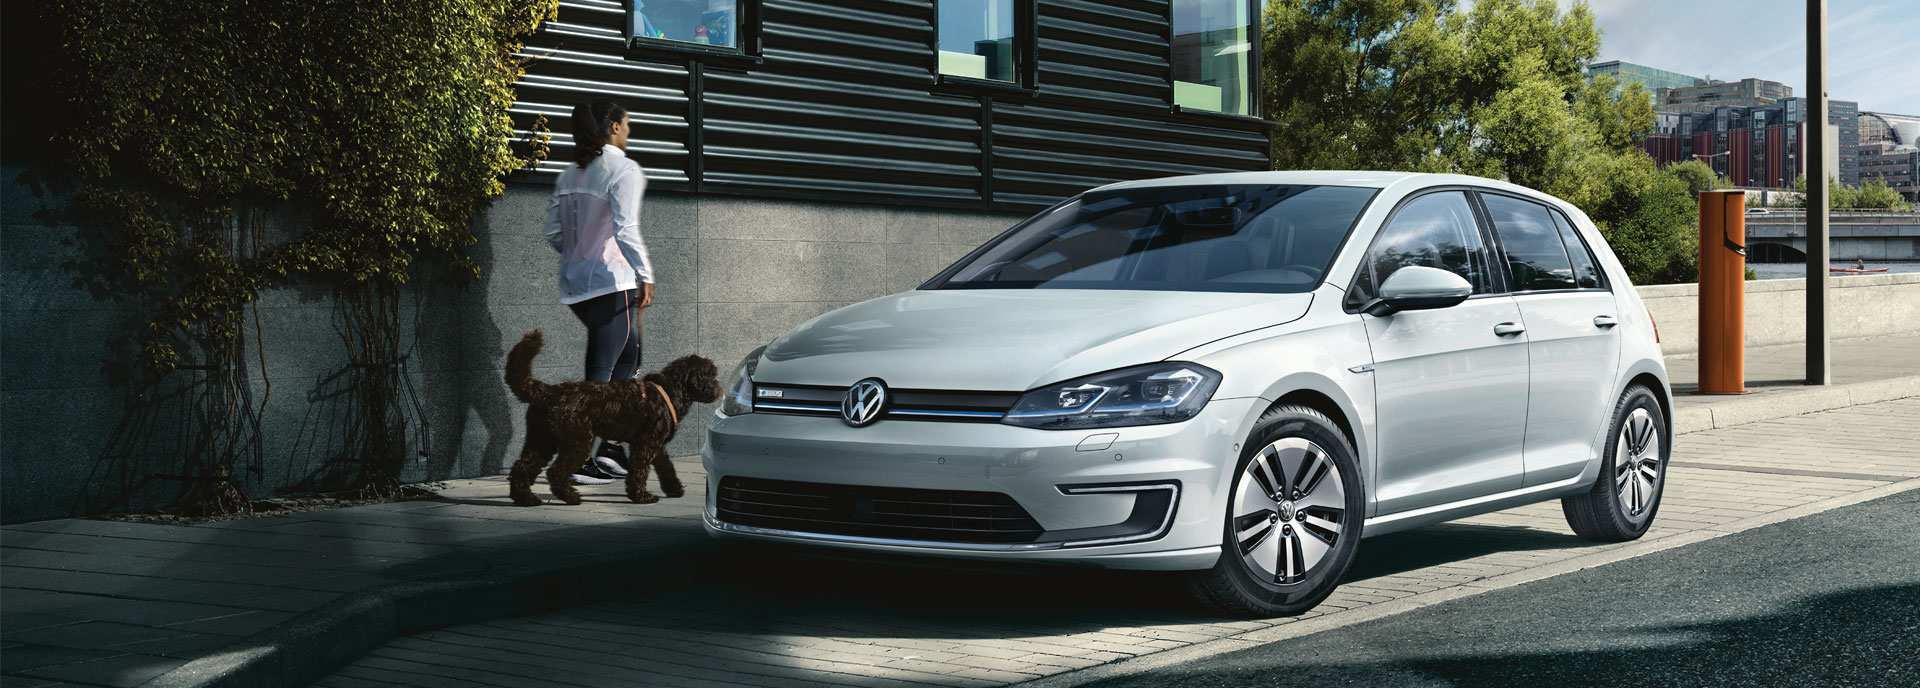 85 Best 2019 Vw E Golf Price